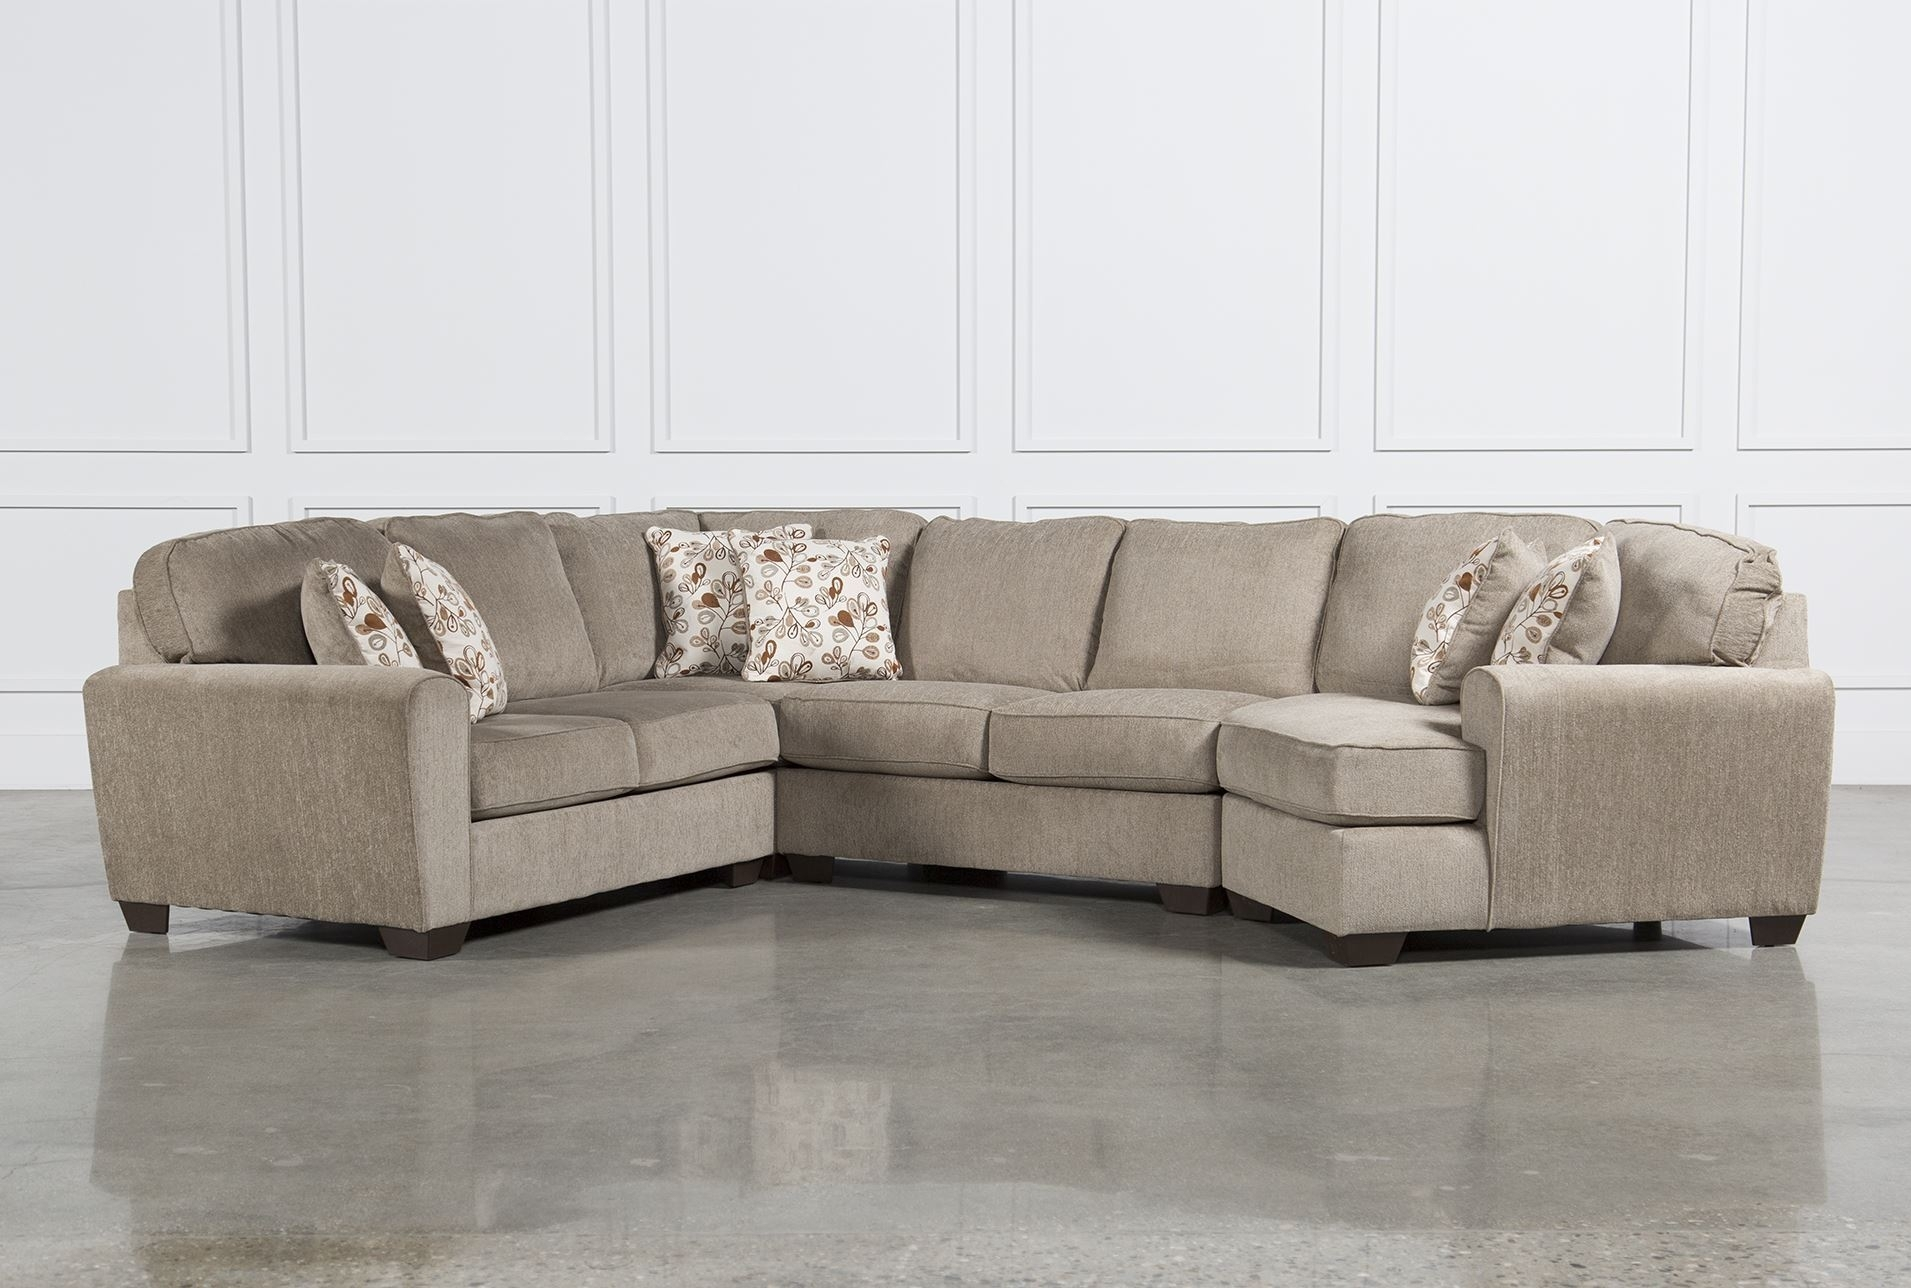 Fancy 4 Piece Sectional Sofa 41 In Contemporary Sofa Inspiration regarding Alder 4 Piece Sectionals (Image 14 of 30)